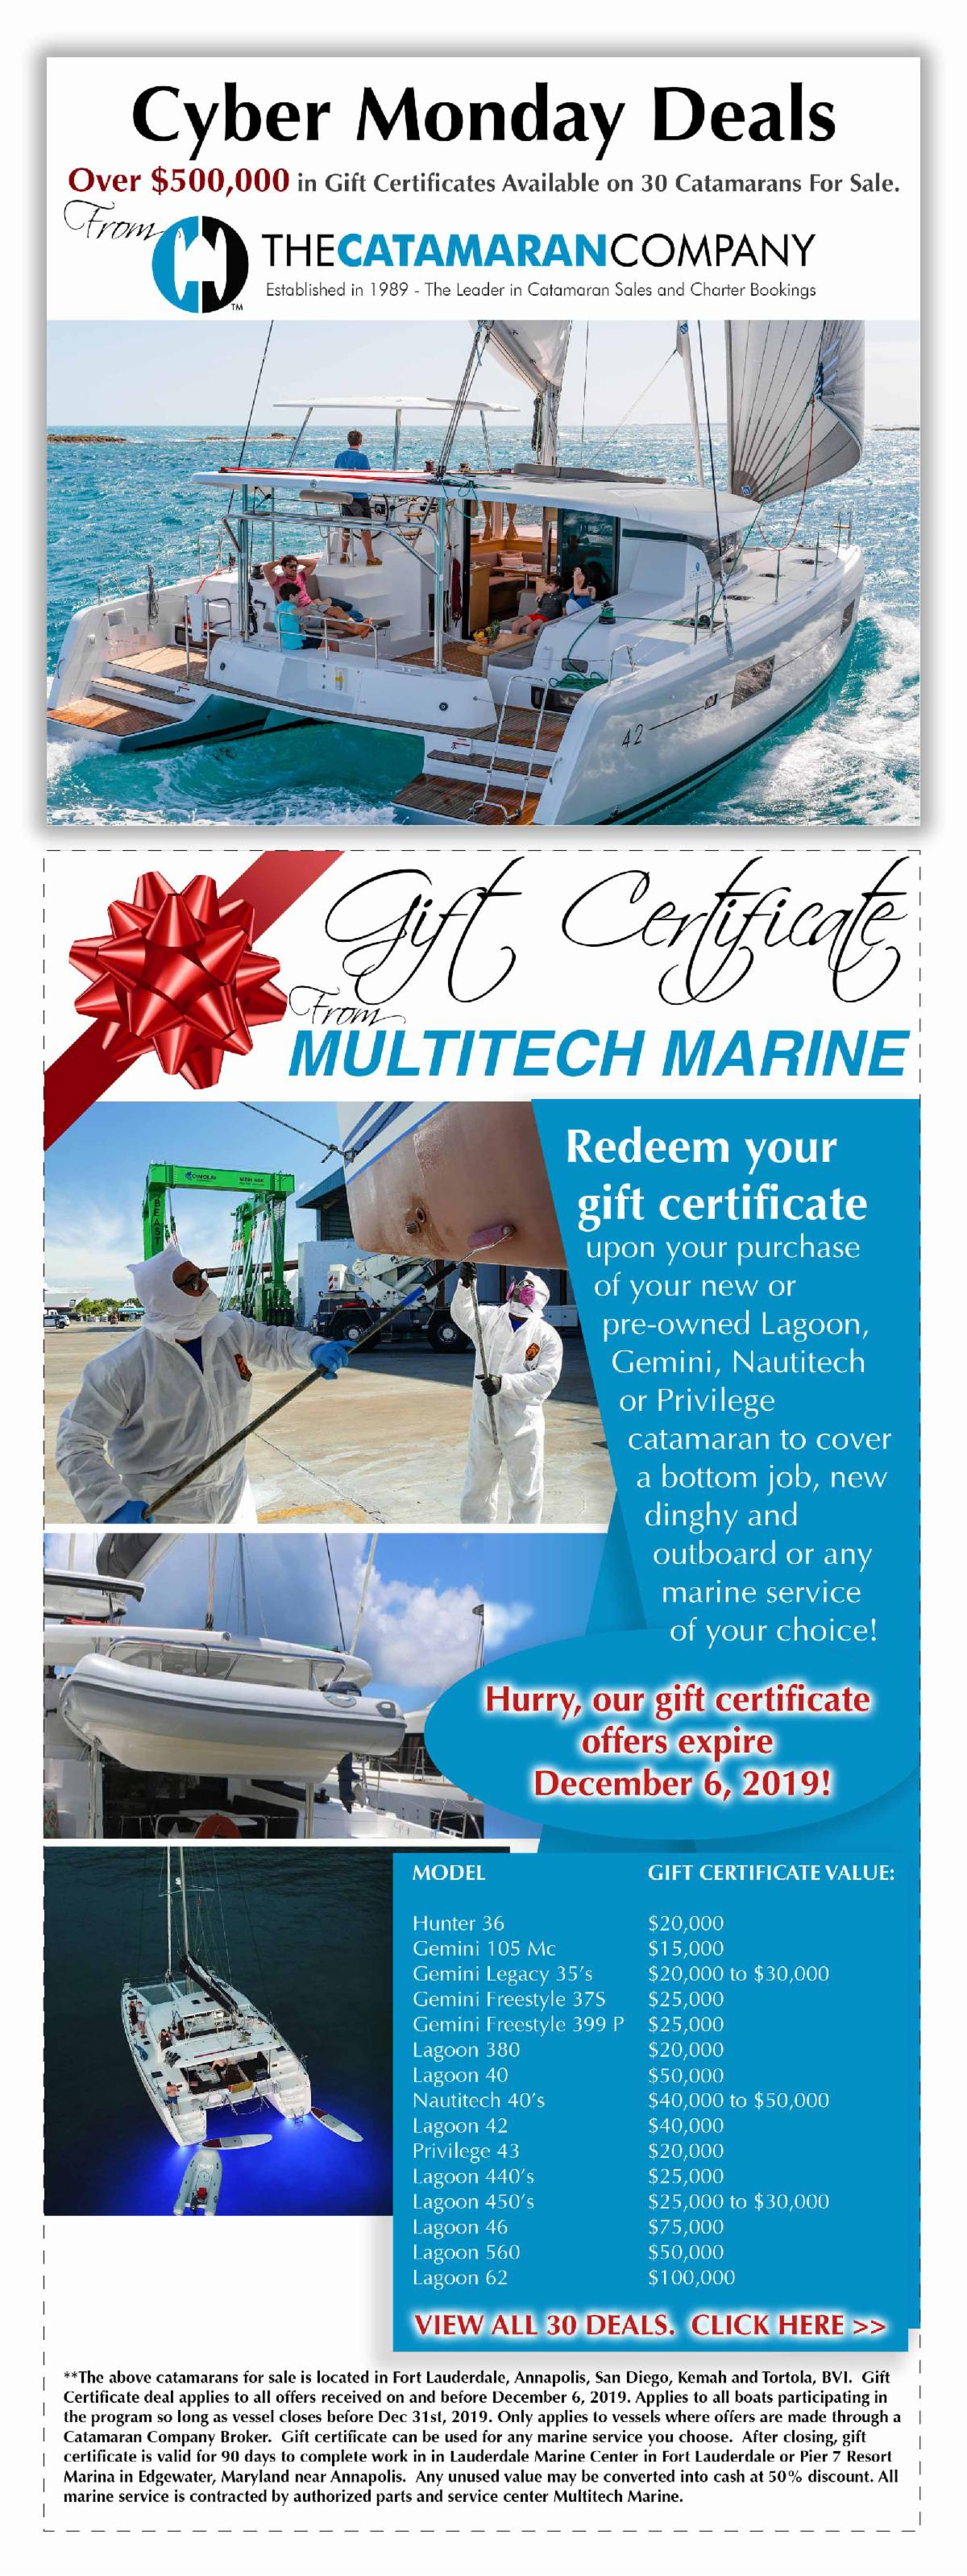 Over $500,000 in Gift Certificates on 30 Catamarans For Sal